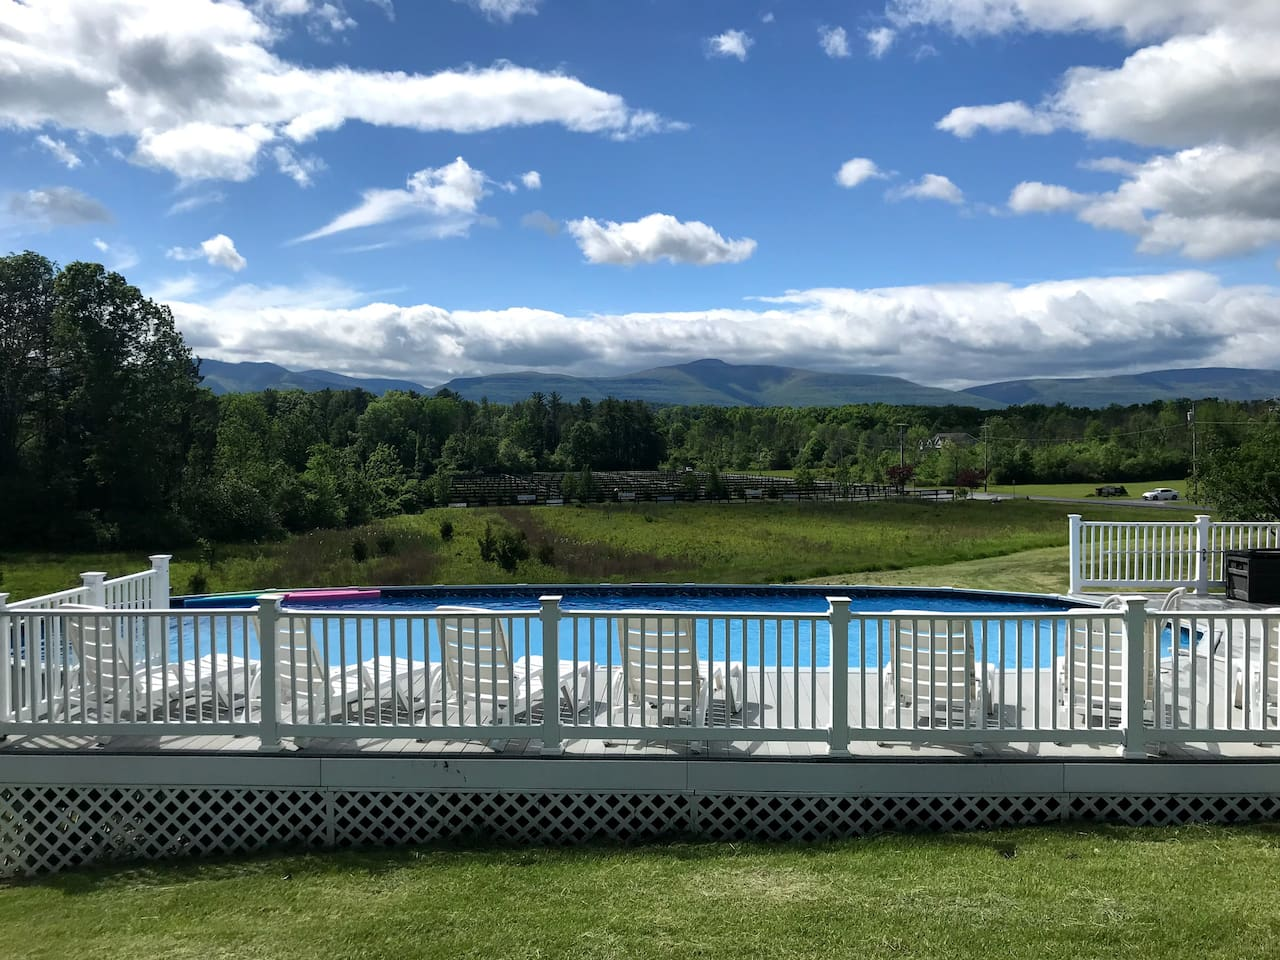 45 by 18 foot pool and panoramic view of the Catskill Mountains